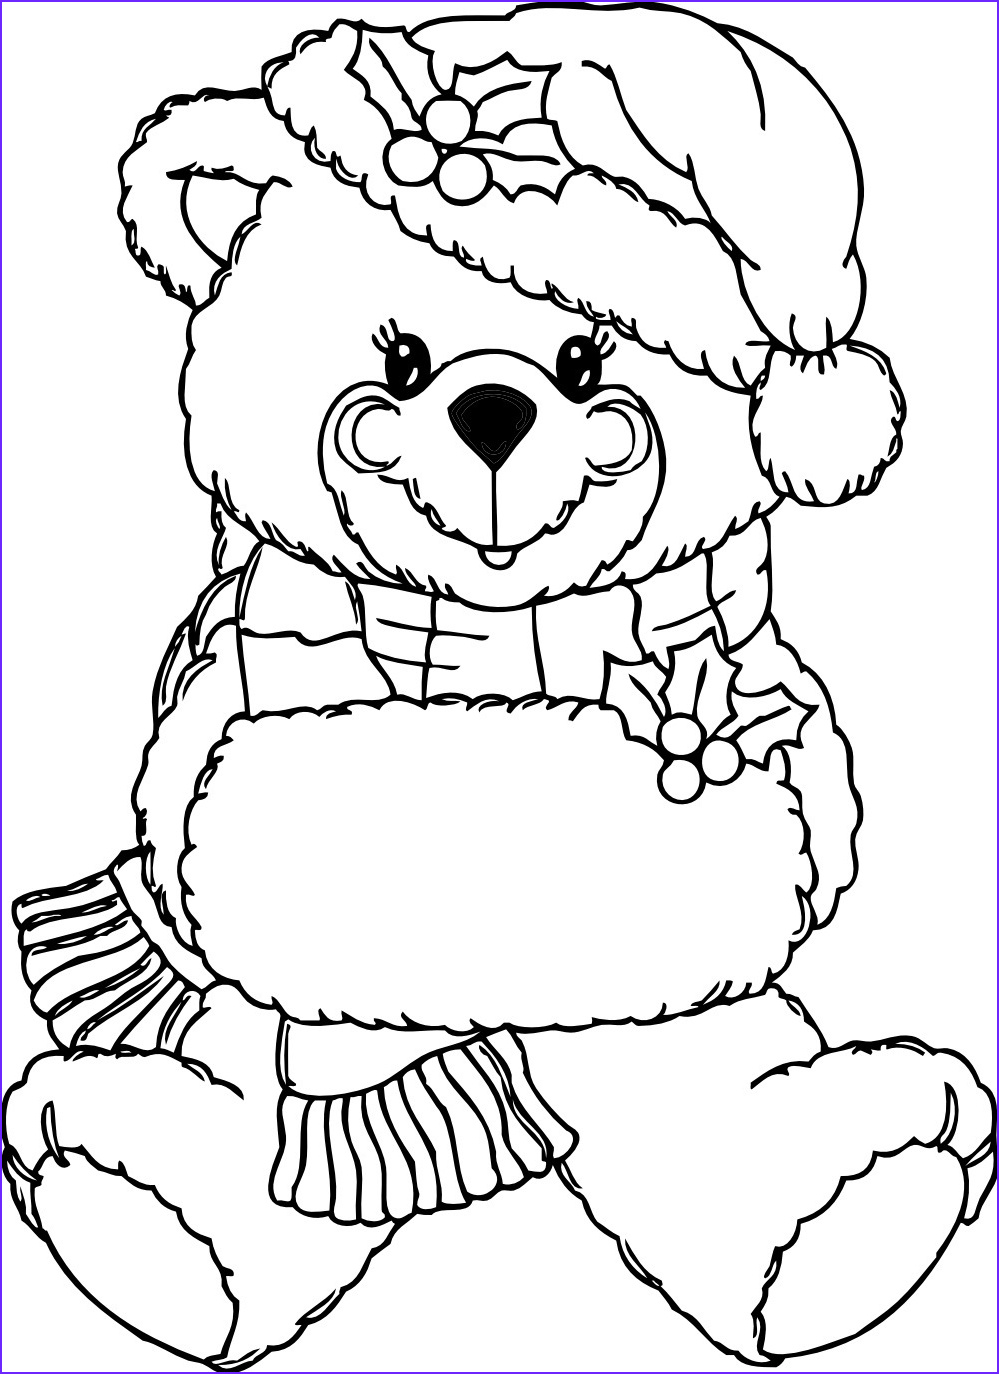 Teddy Bear Coloring Pages Cool Images Free Printable Teddy Bear Coloring Pages for Kids